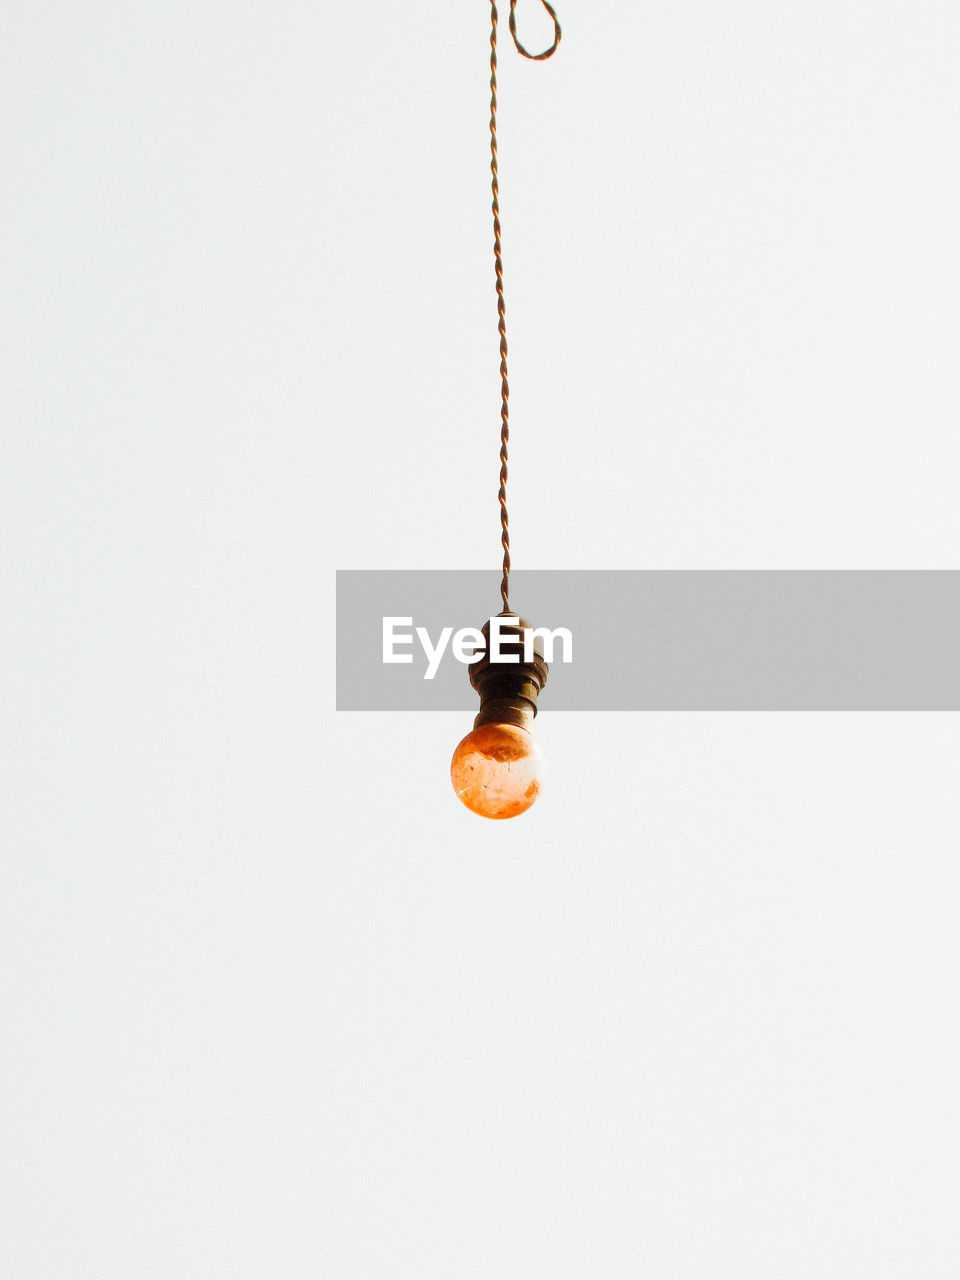 Low angle view of lighting equipment hanging against white background